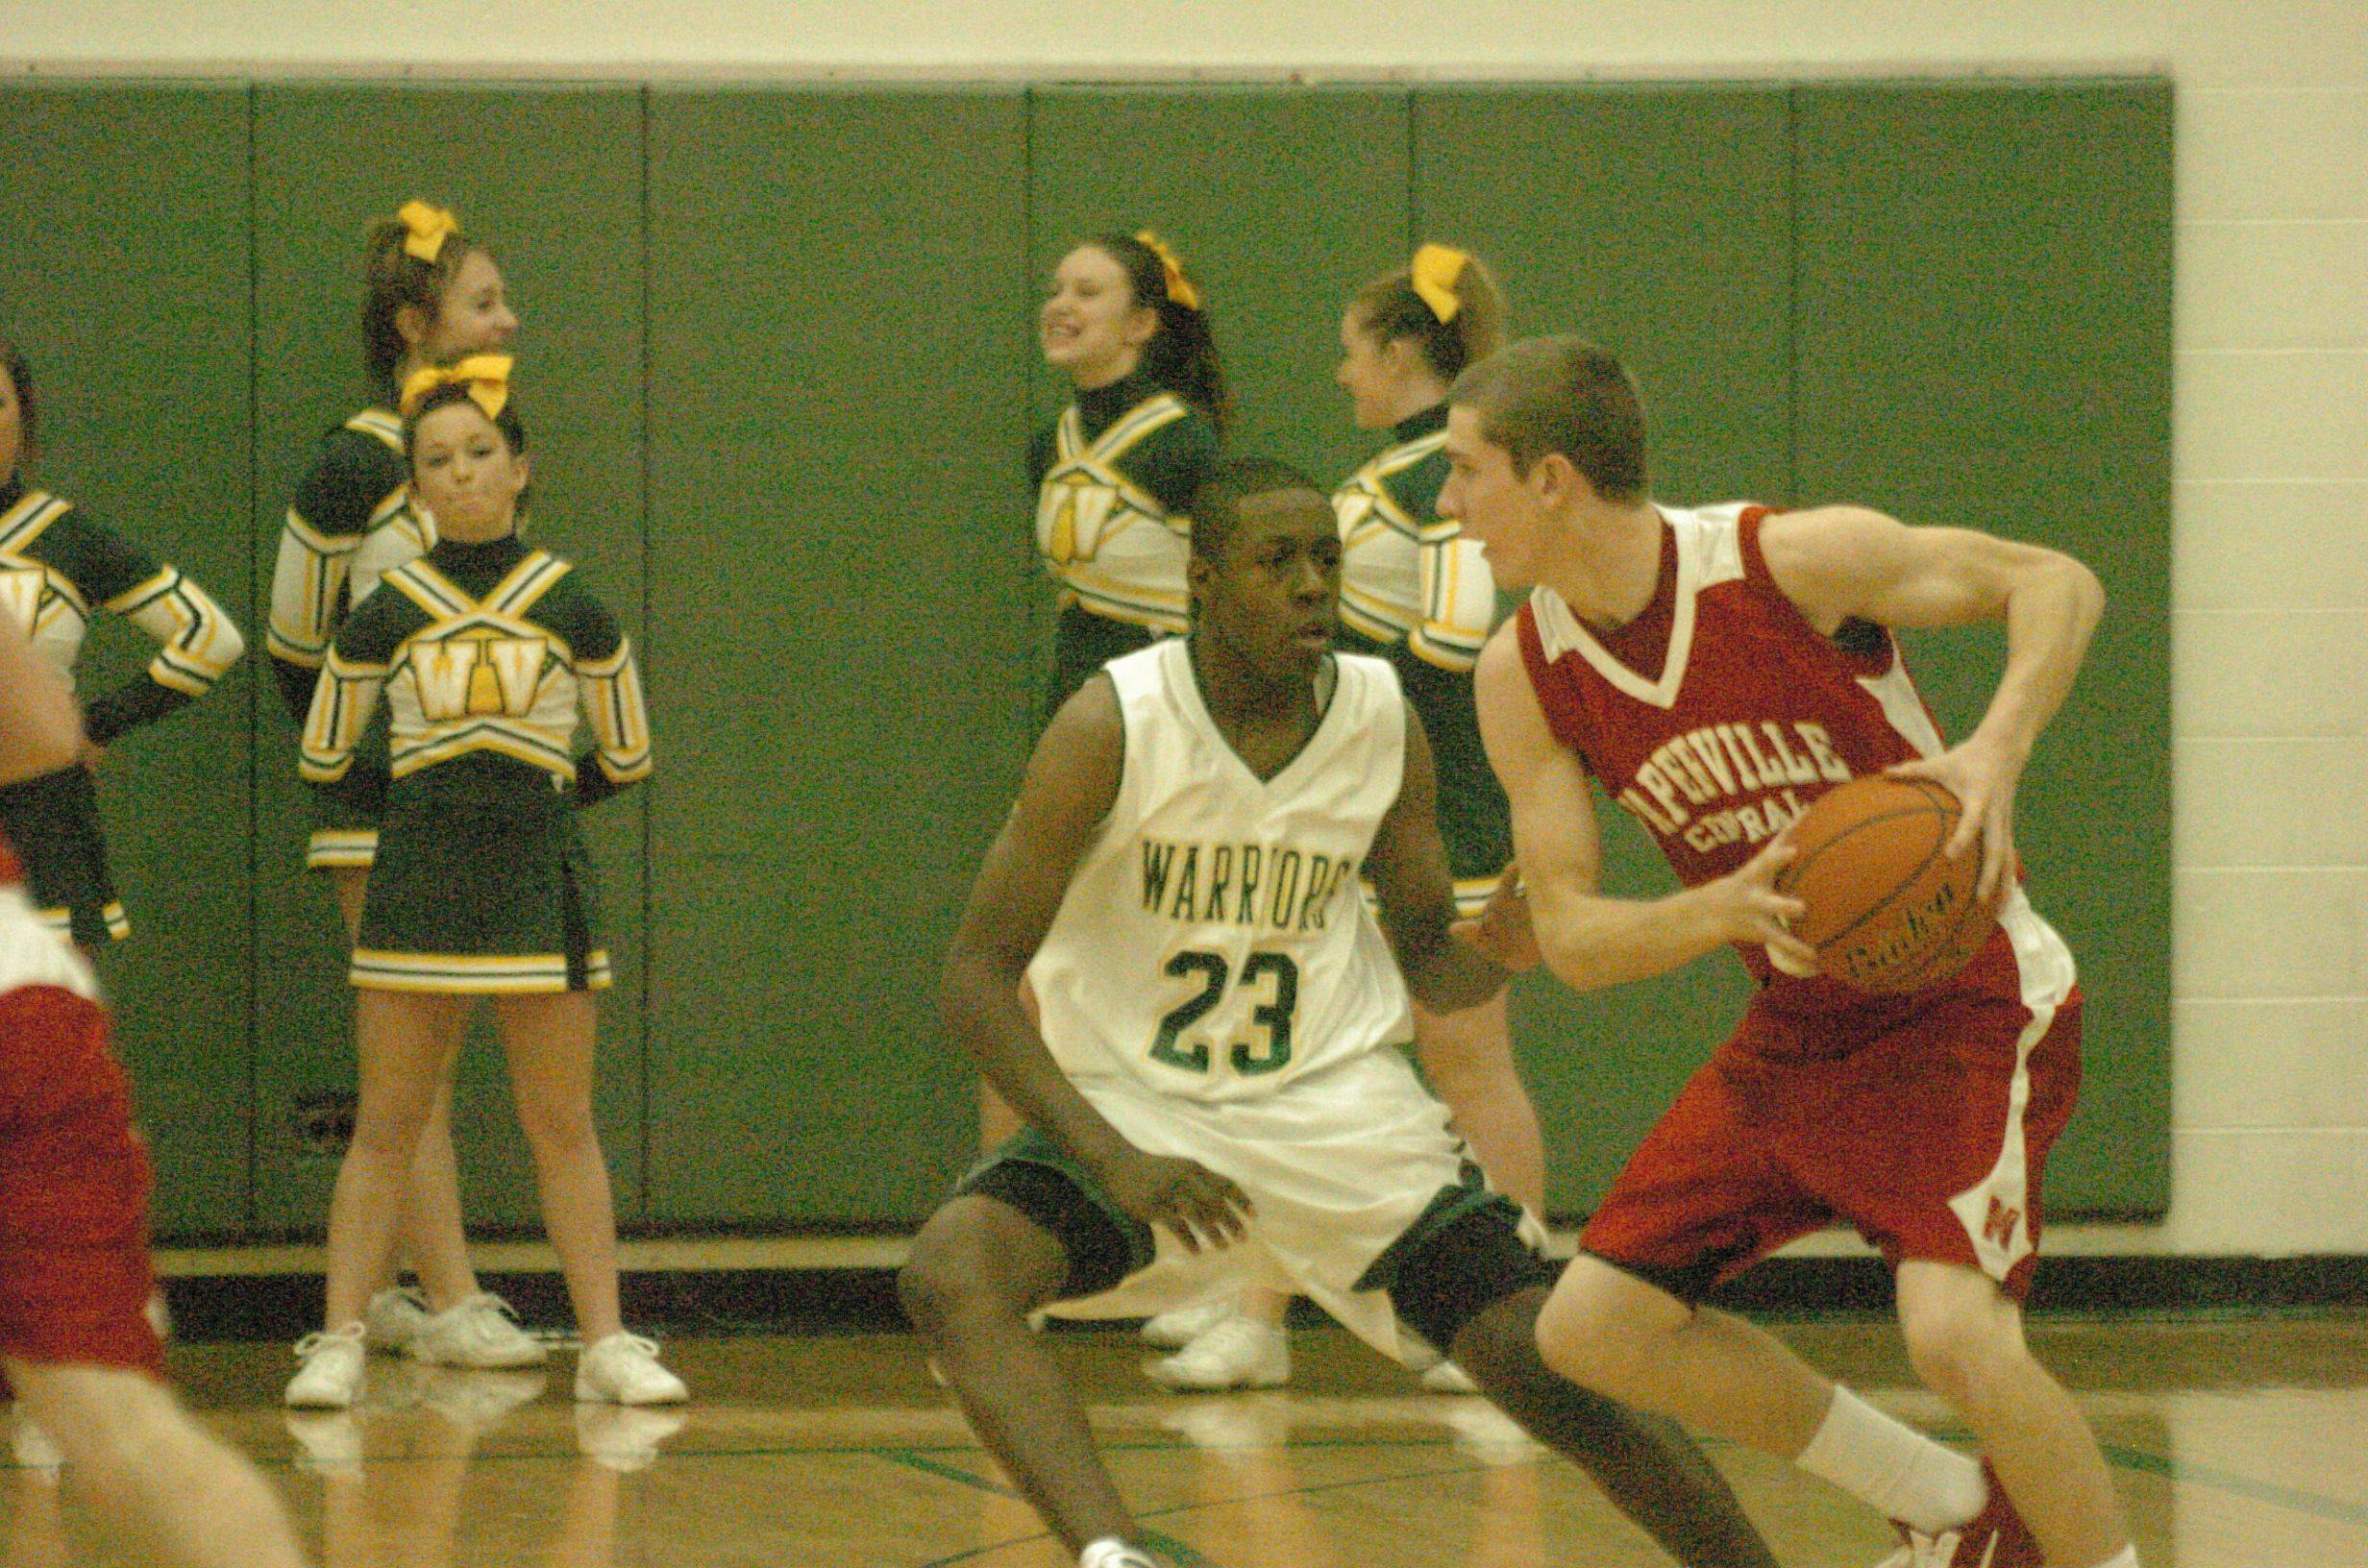 Boys basketball. Naperville Central at Waubonsie Valley in Aurora.